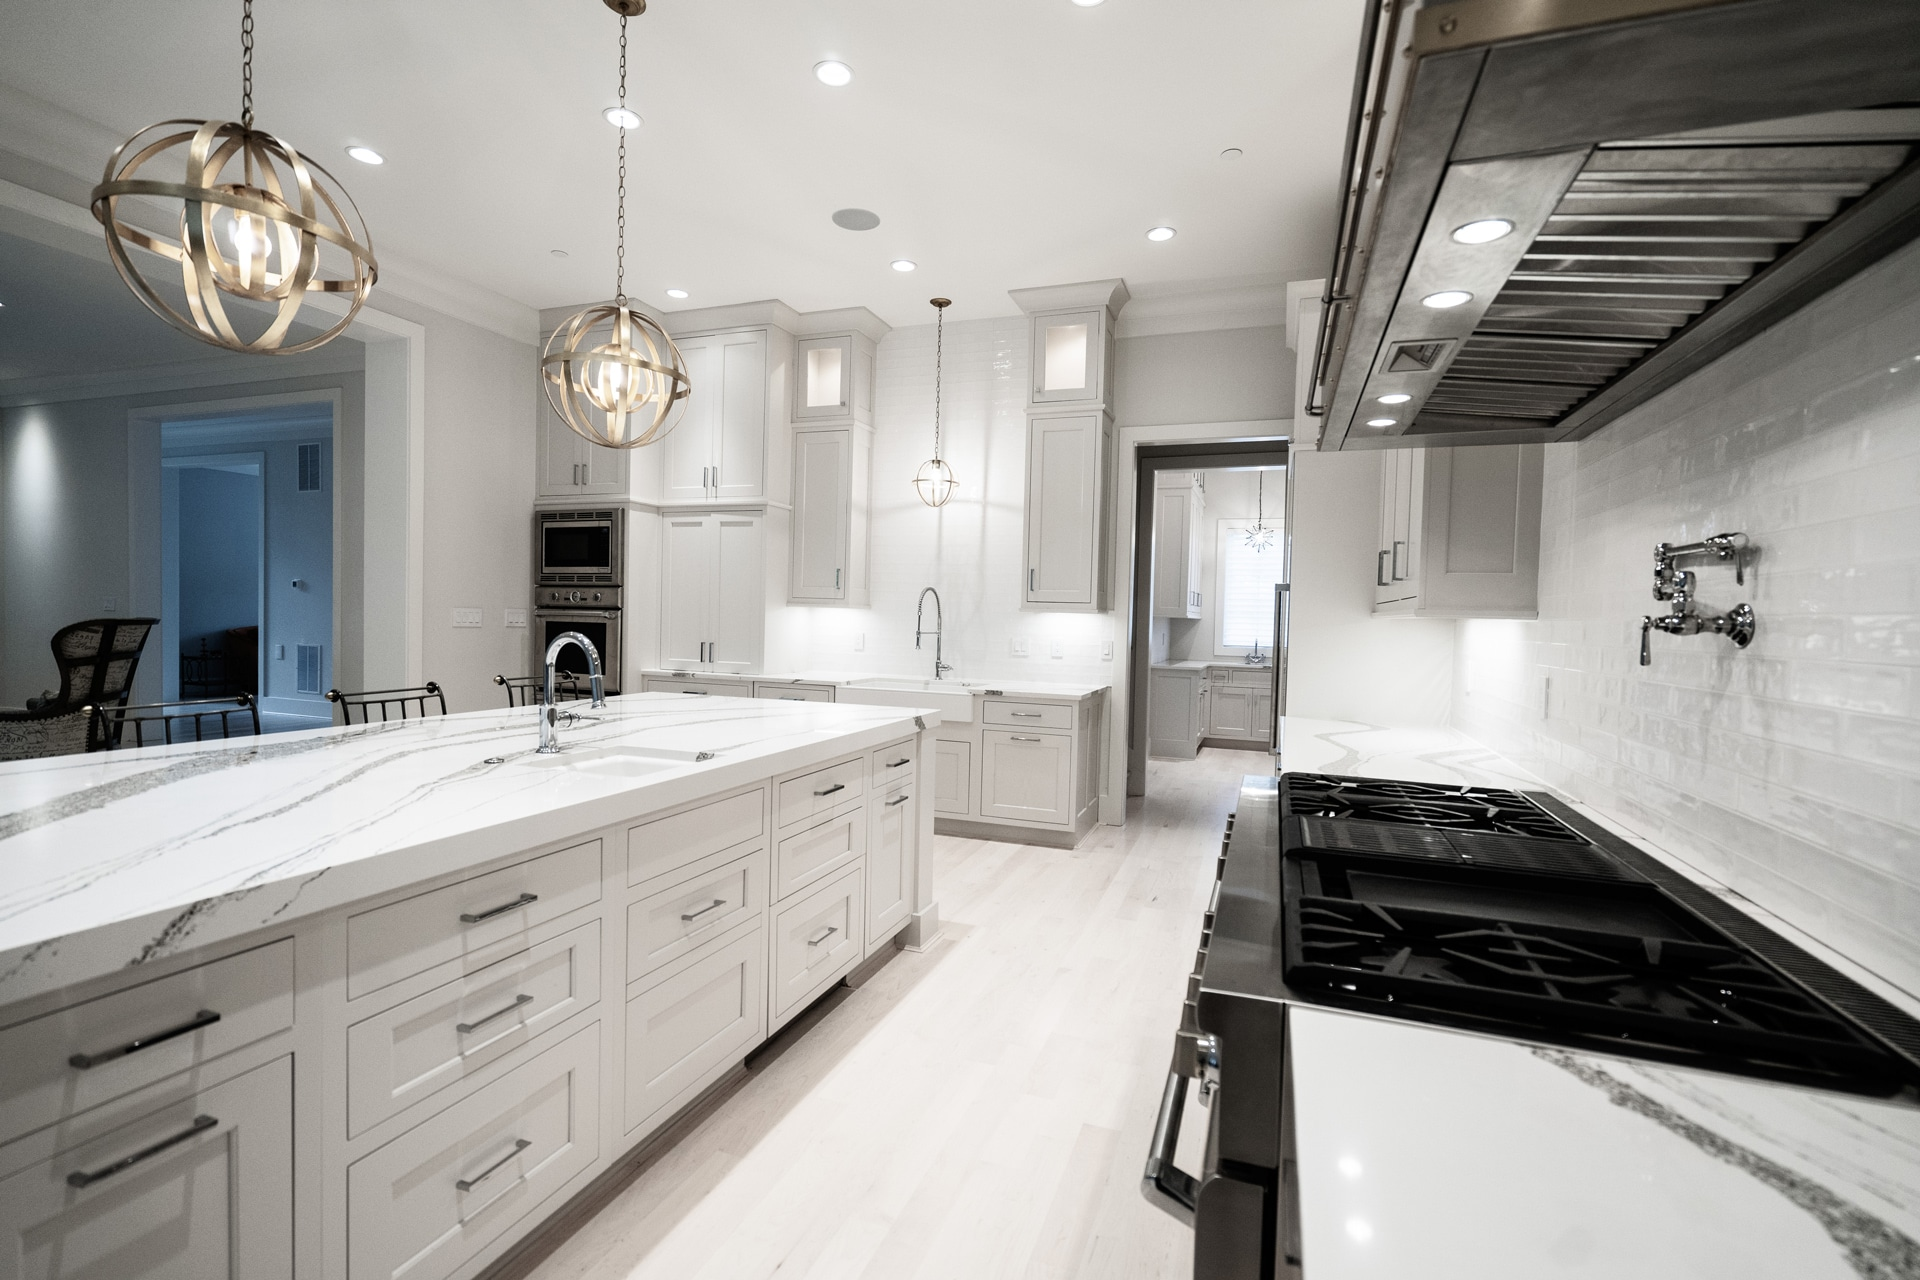 2019 Trends Choosing The Perfect White Countertop Usa